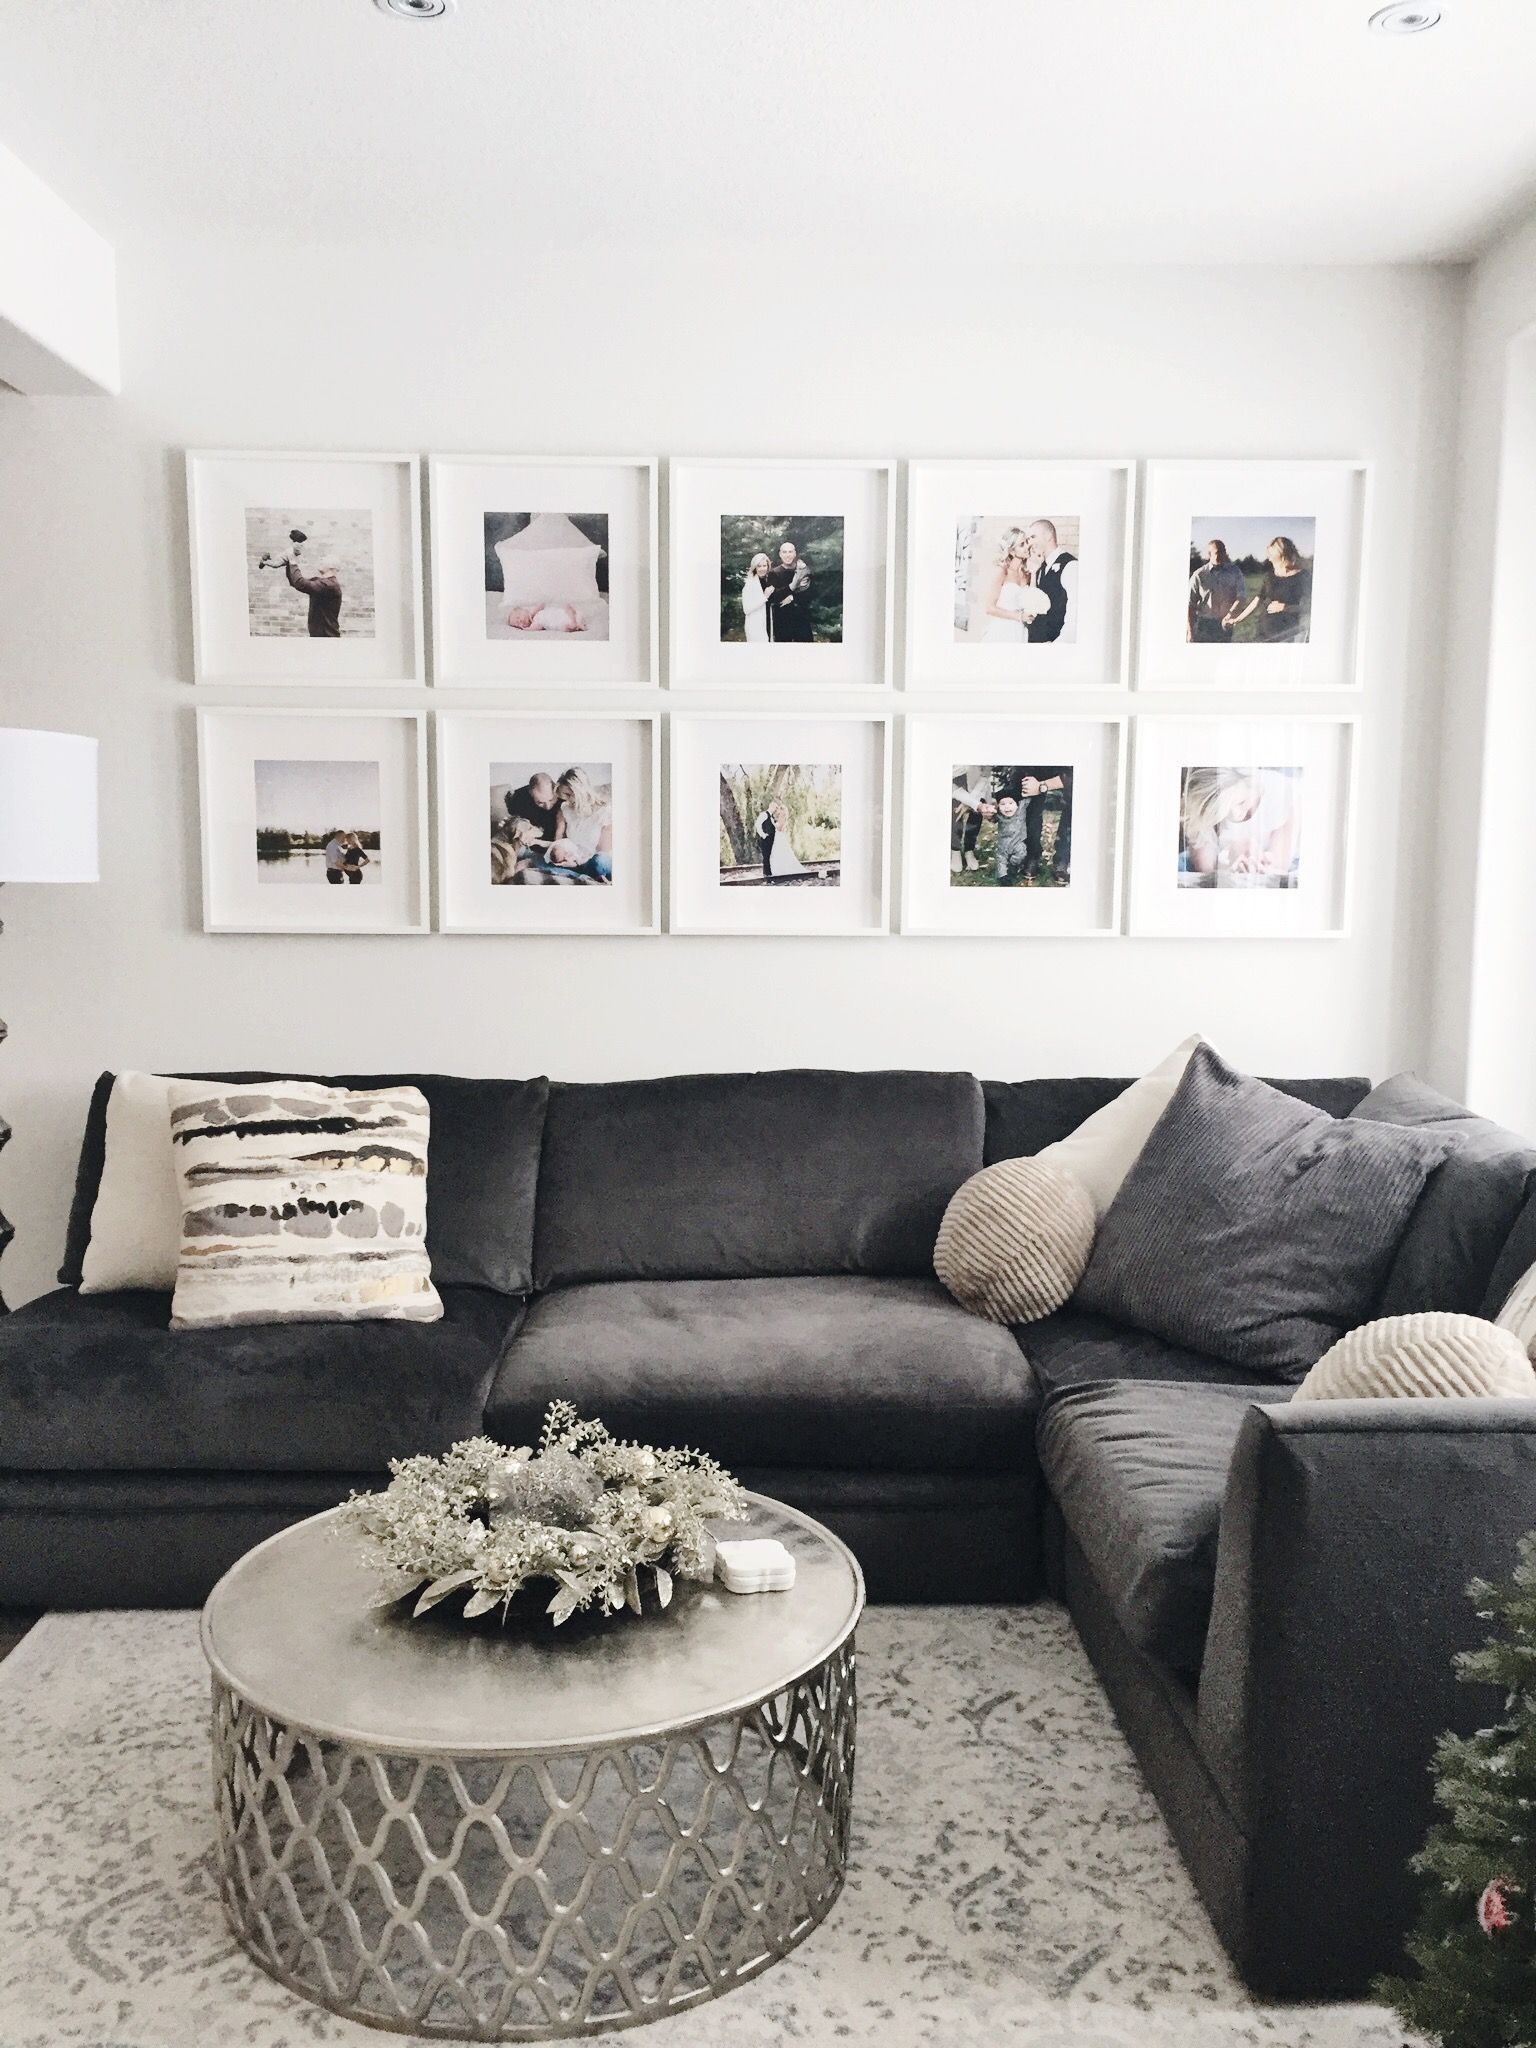 201 Ideas For Living Room Wall 2020 In 2020 Gallery Wall Living Room Home Living Room Trendy Living Rooms